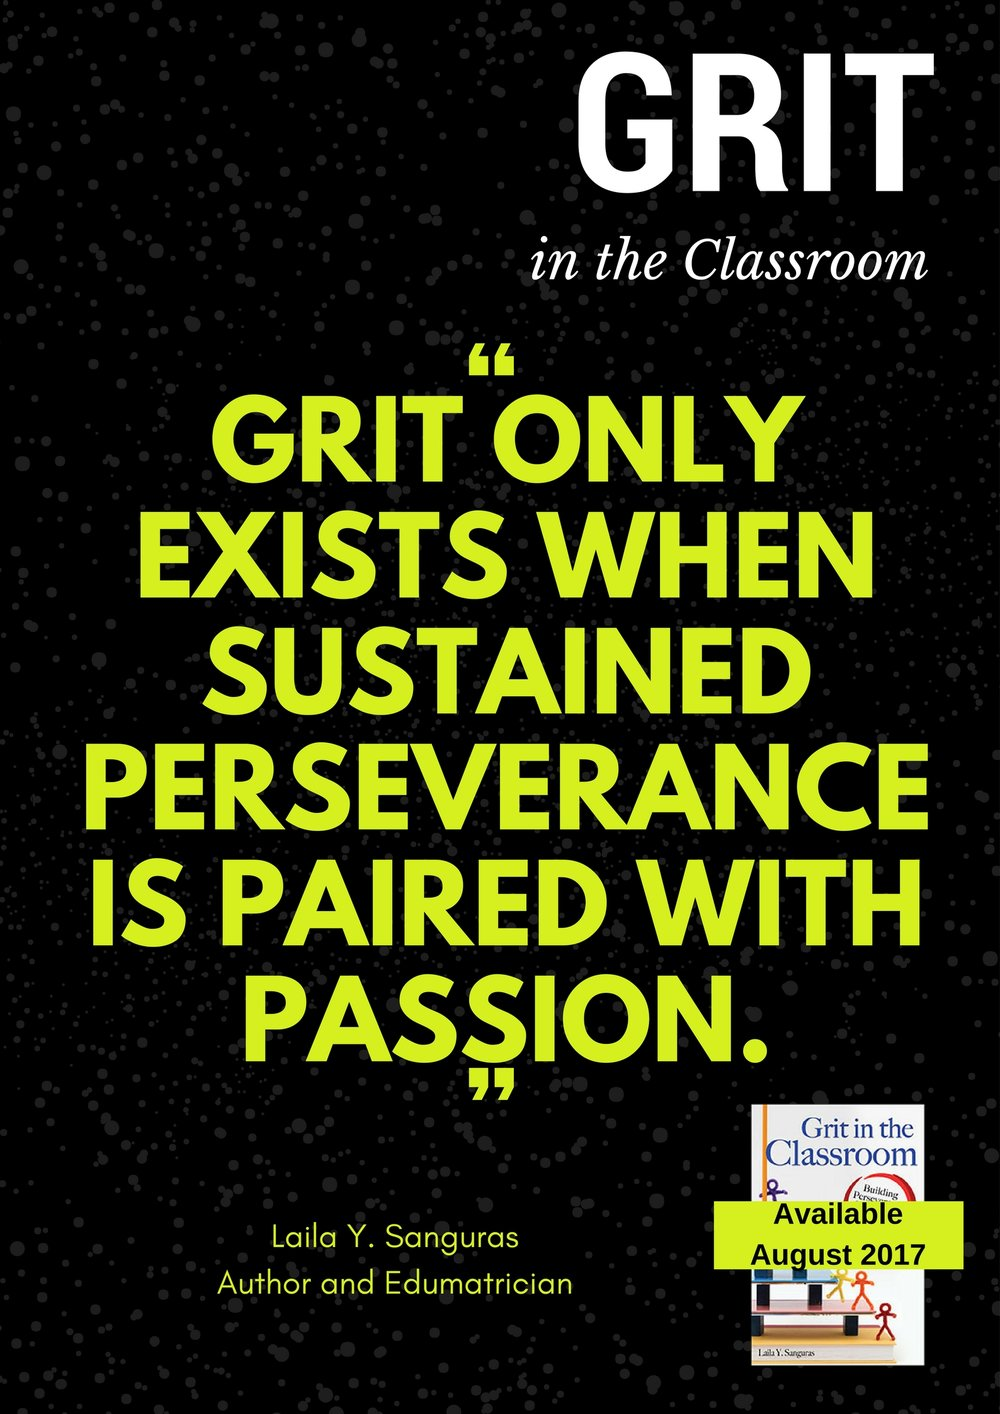 2017 Grit in the Classroom.jpg